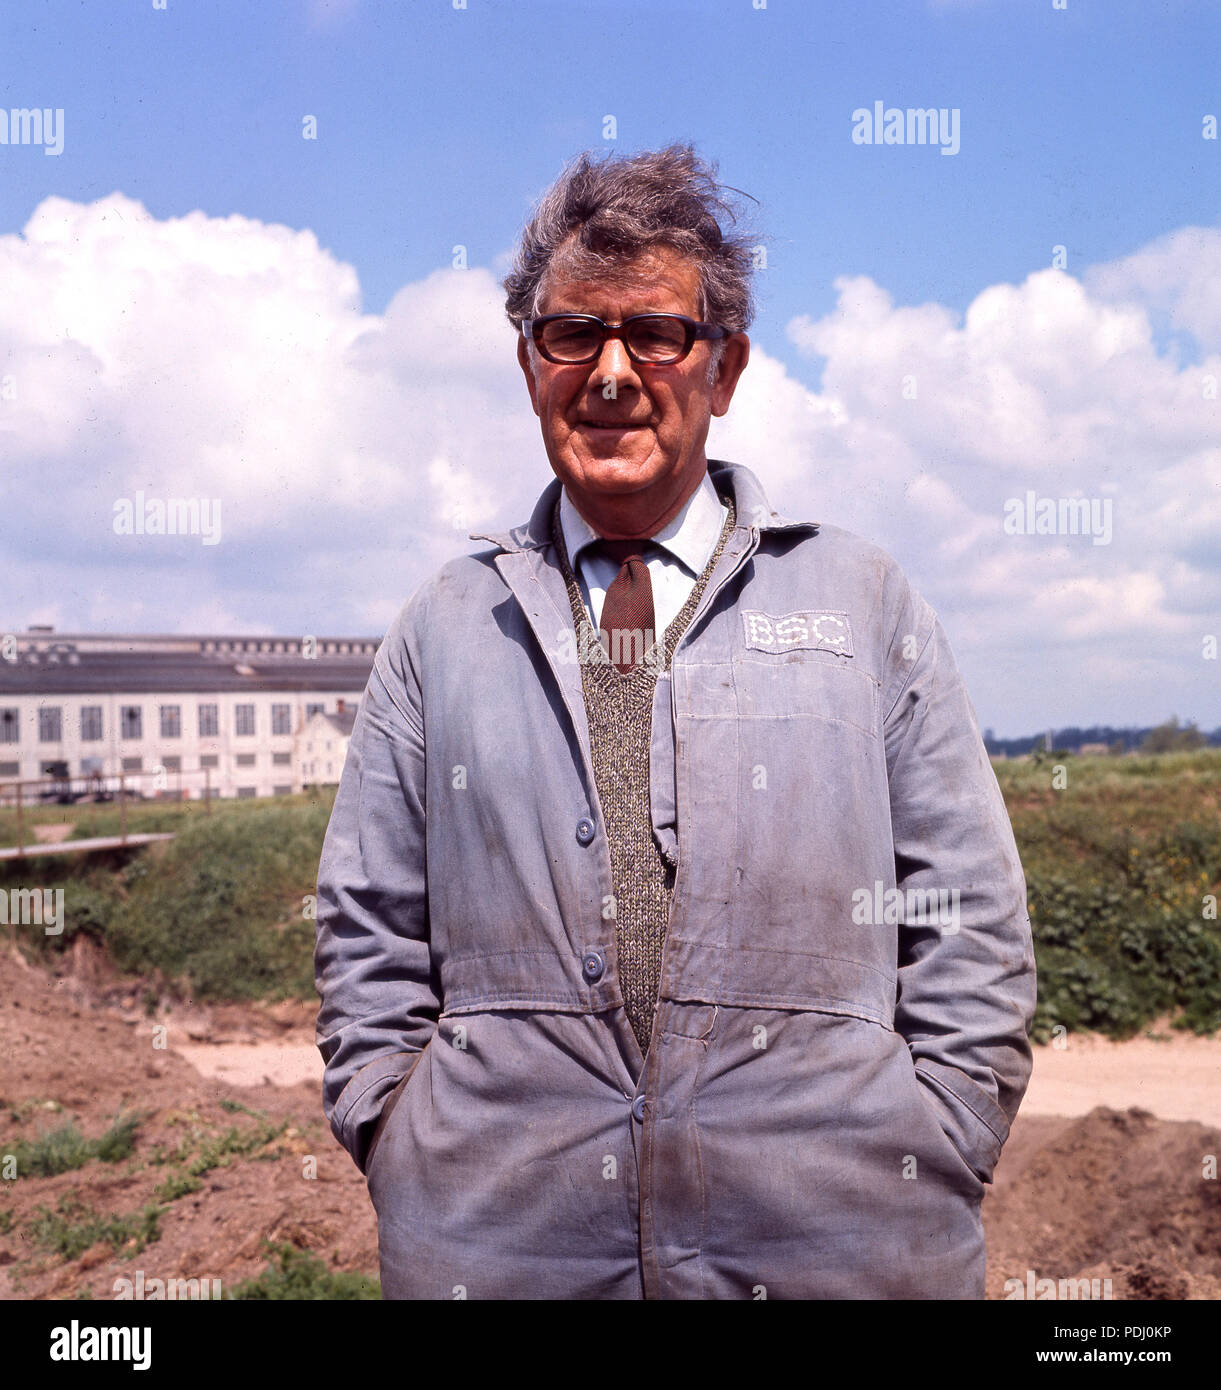 1960s, man standing outdoors in a shirt and tie and work clothes, the blue/grey overalls of the nationalised British Steel Corporation (BSC), England, UK. - Stock Image